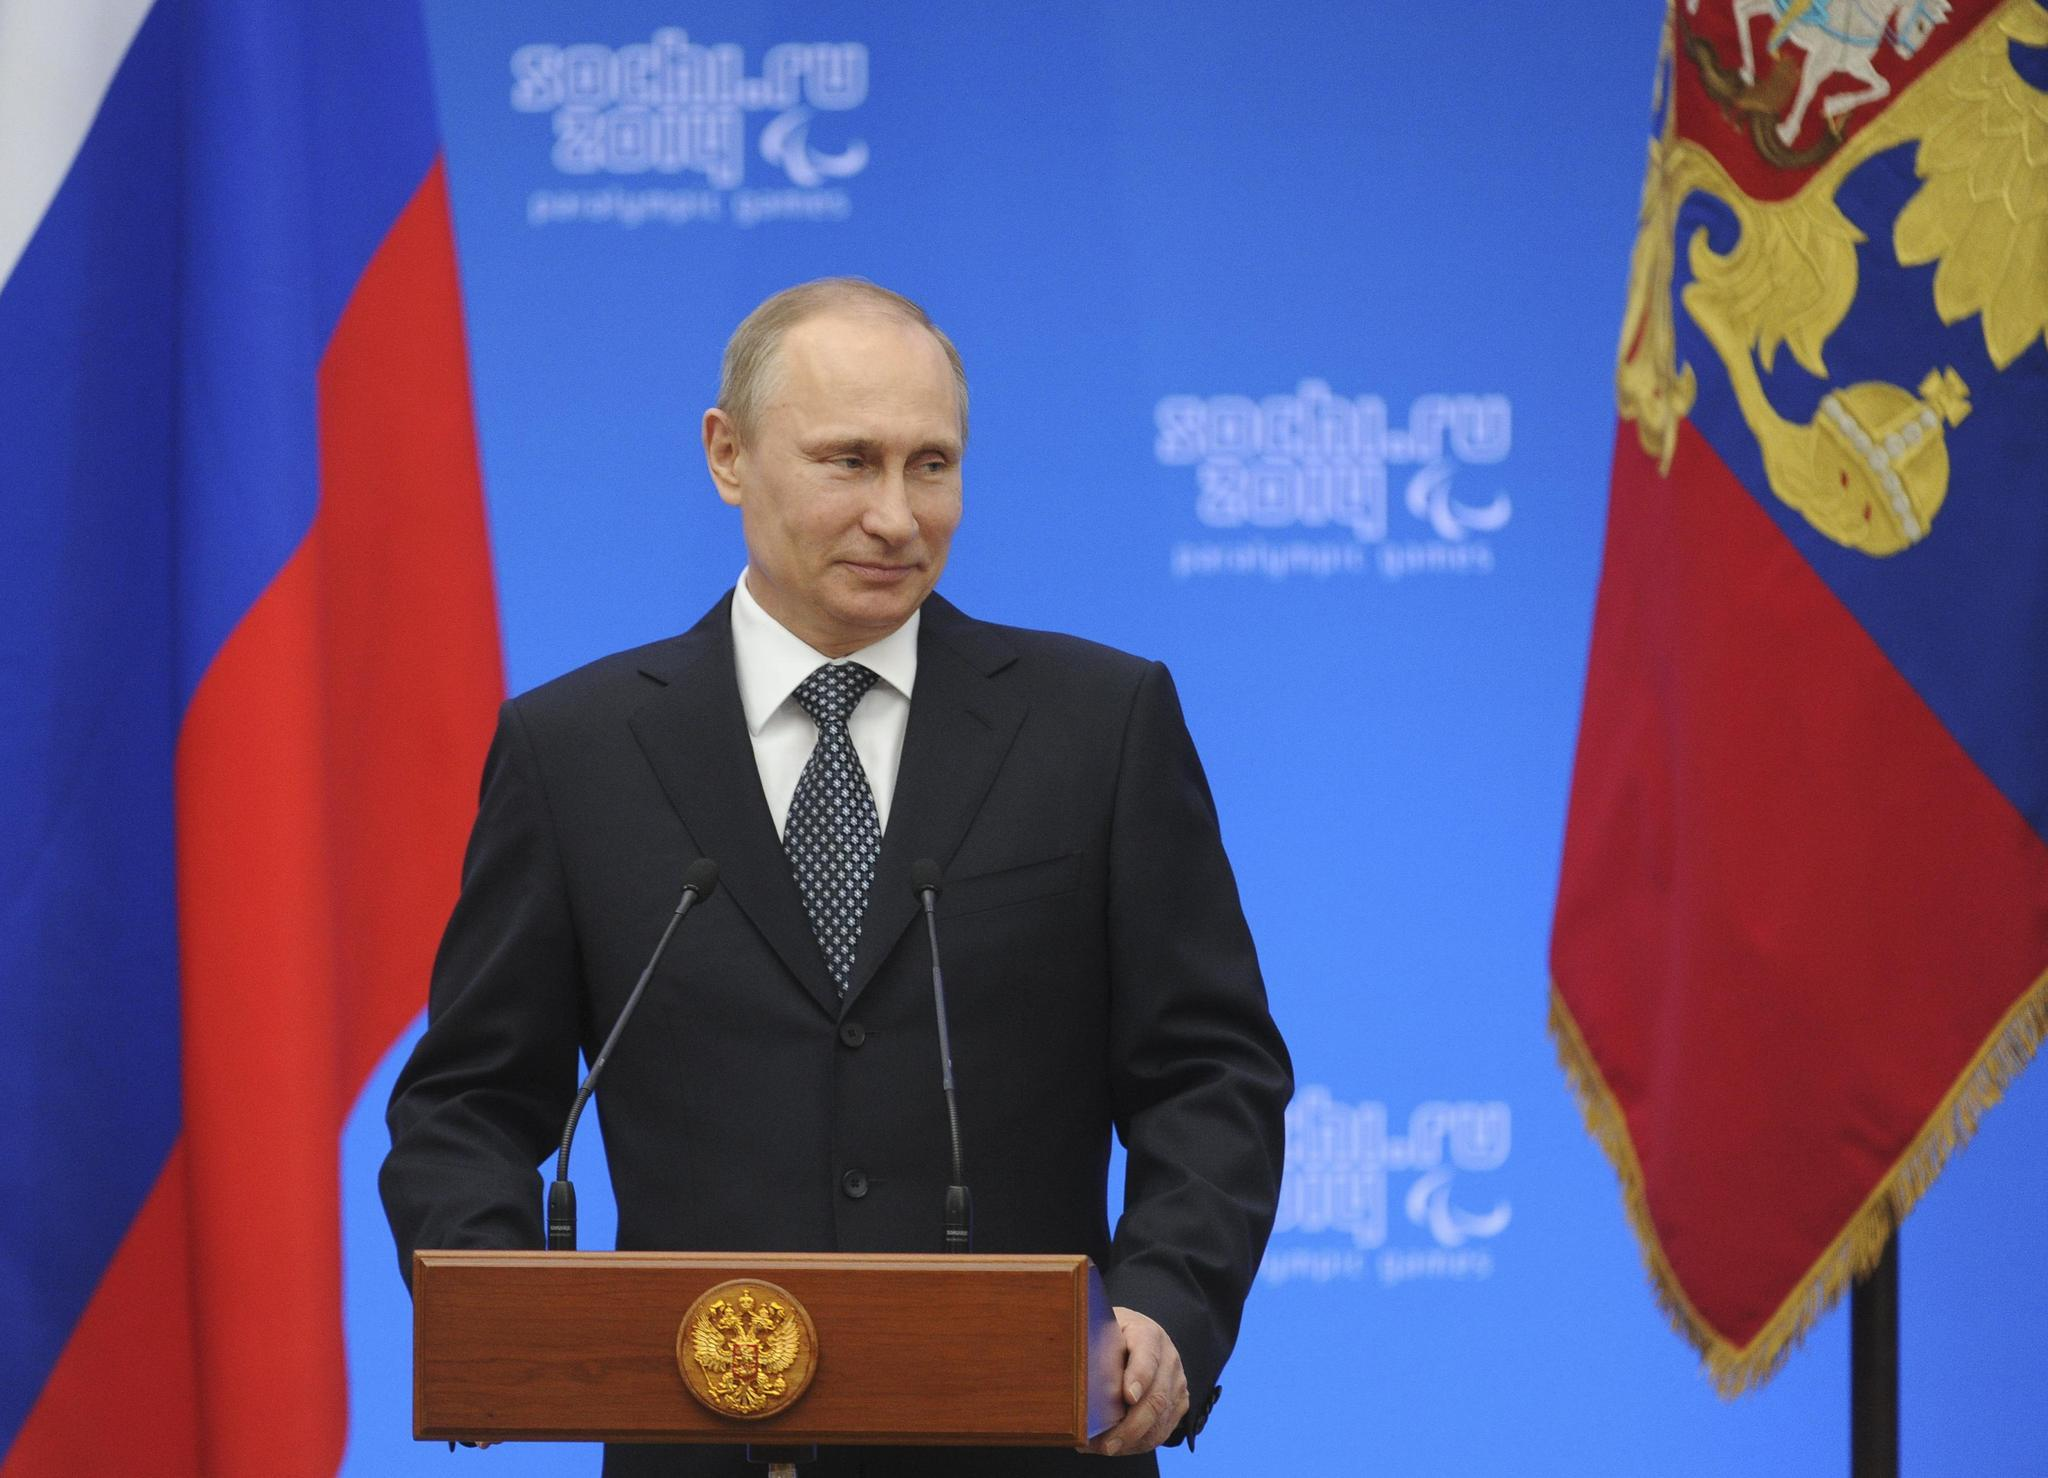 President Vladimir Putin on Tuesday took the first steps to absorb the Ukrainian region of Crimea into Russia, in what would mark the most significant redrawing of Europe's borders since World War II.